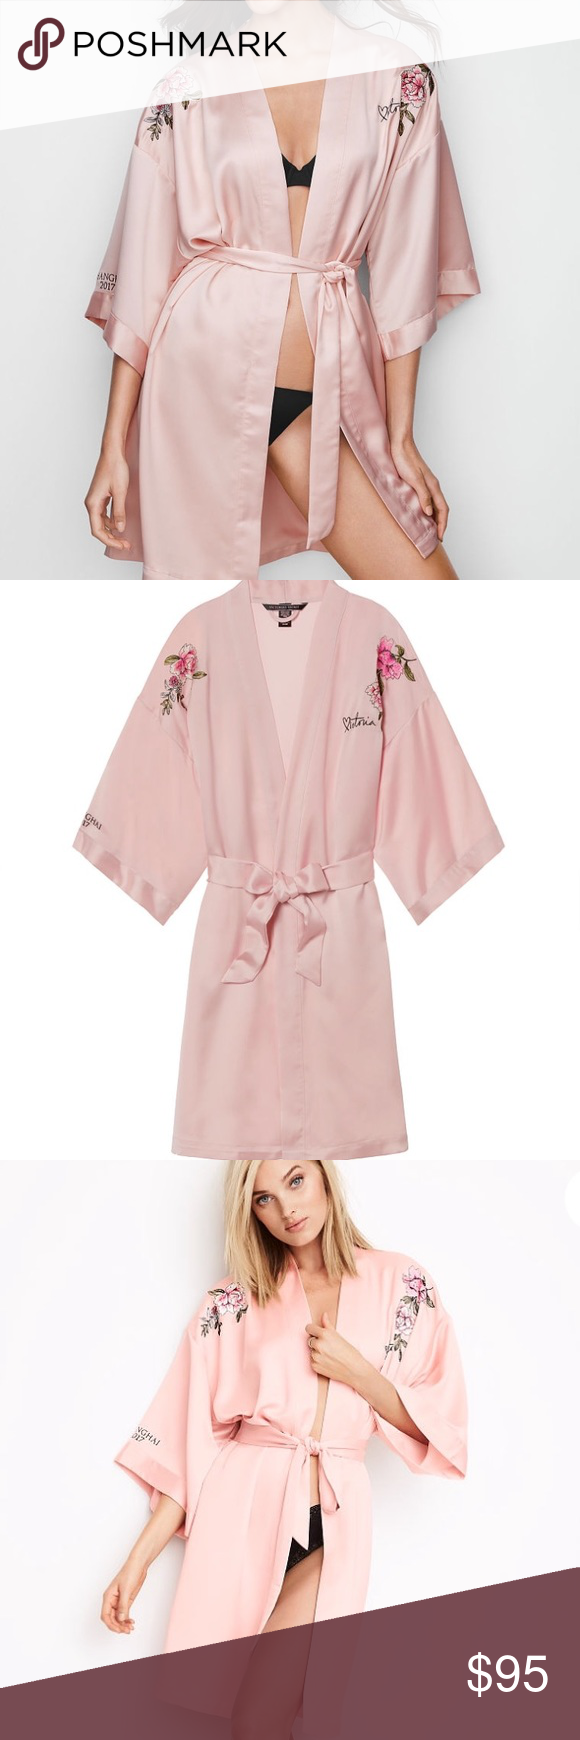 Victoria\'s Secret embroidered fashion show robe 17 NWT | My Posh ...